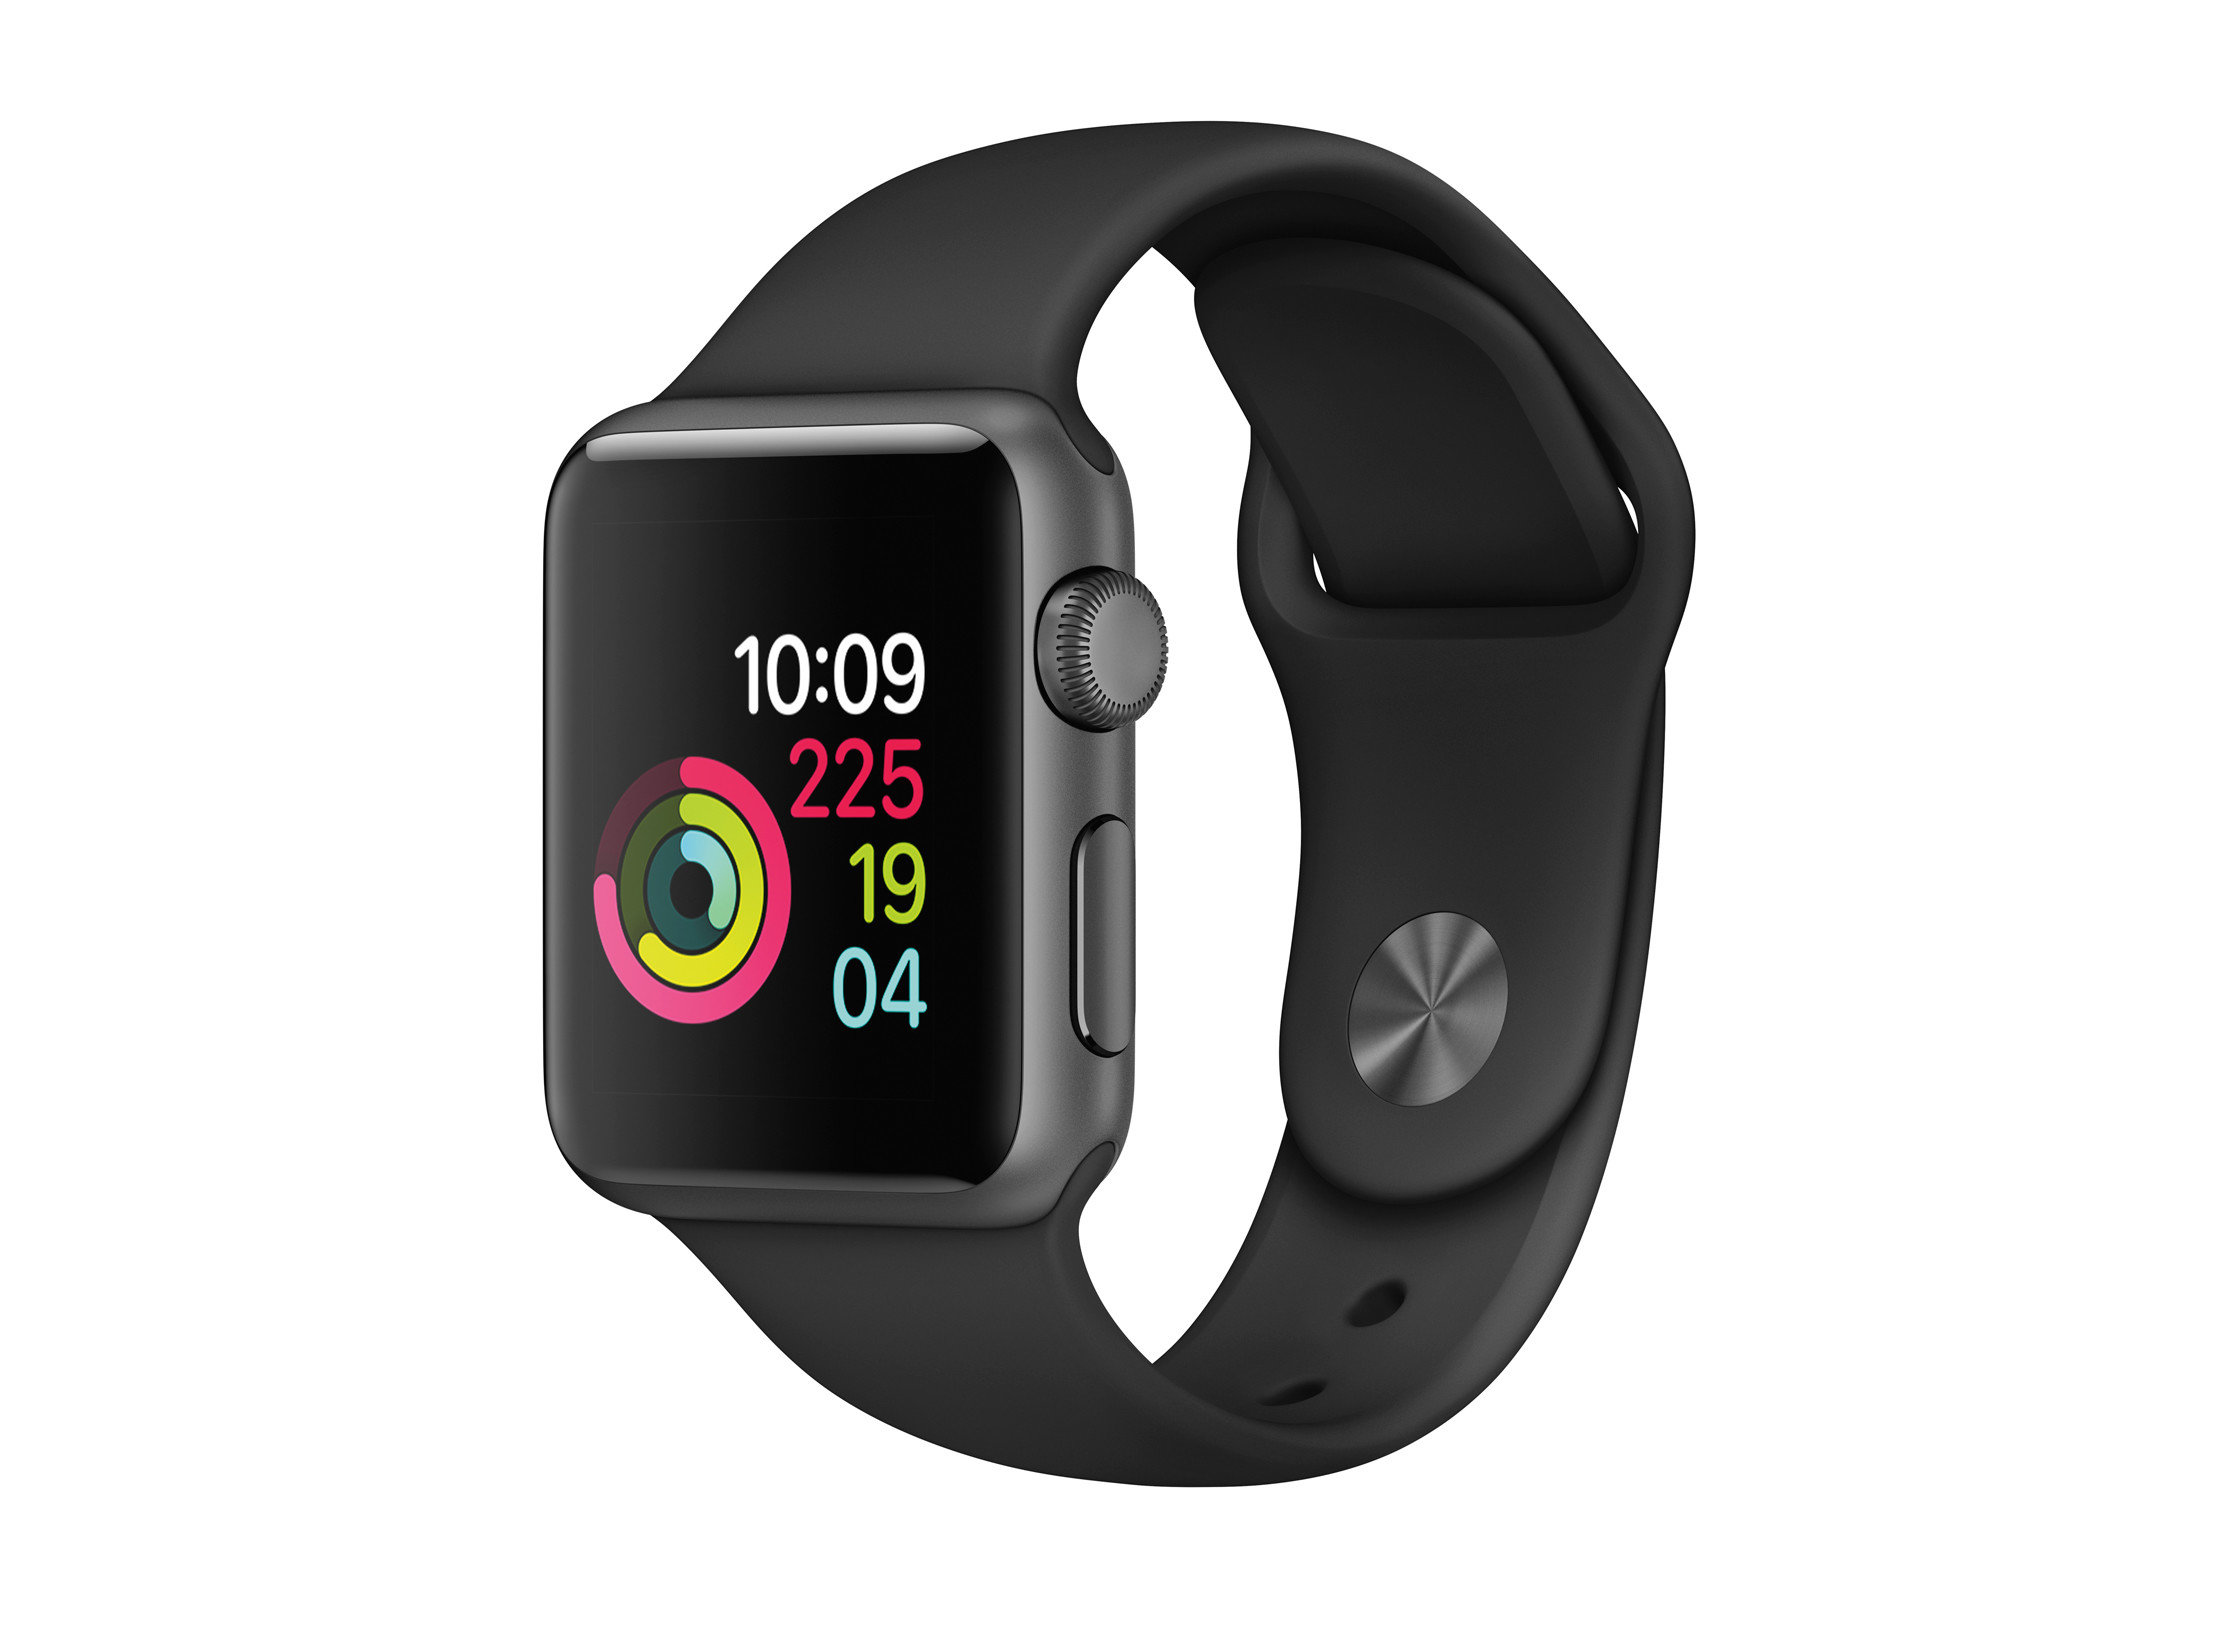 Gift Guides Travel Shop product technology product design watch electronic device audio font audio equipment hardware